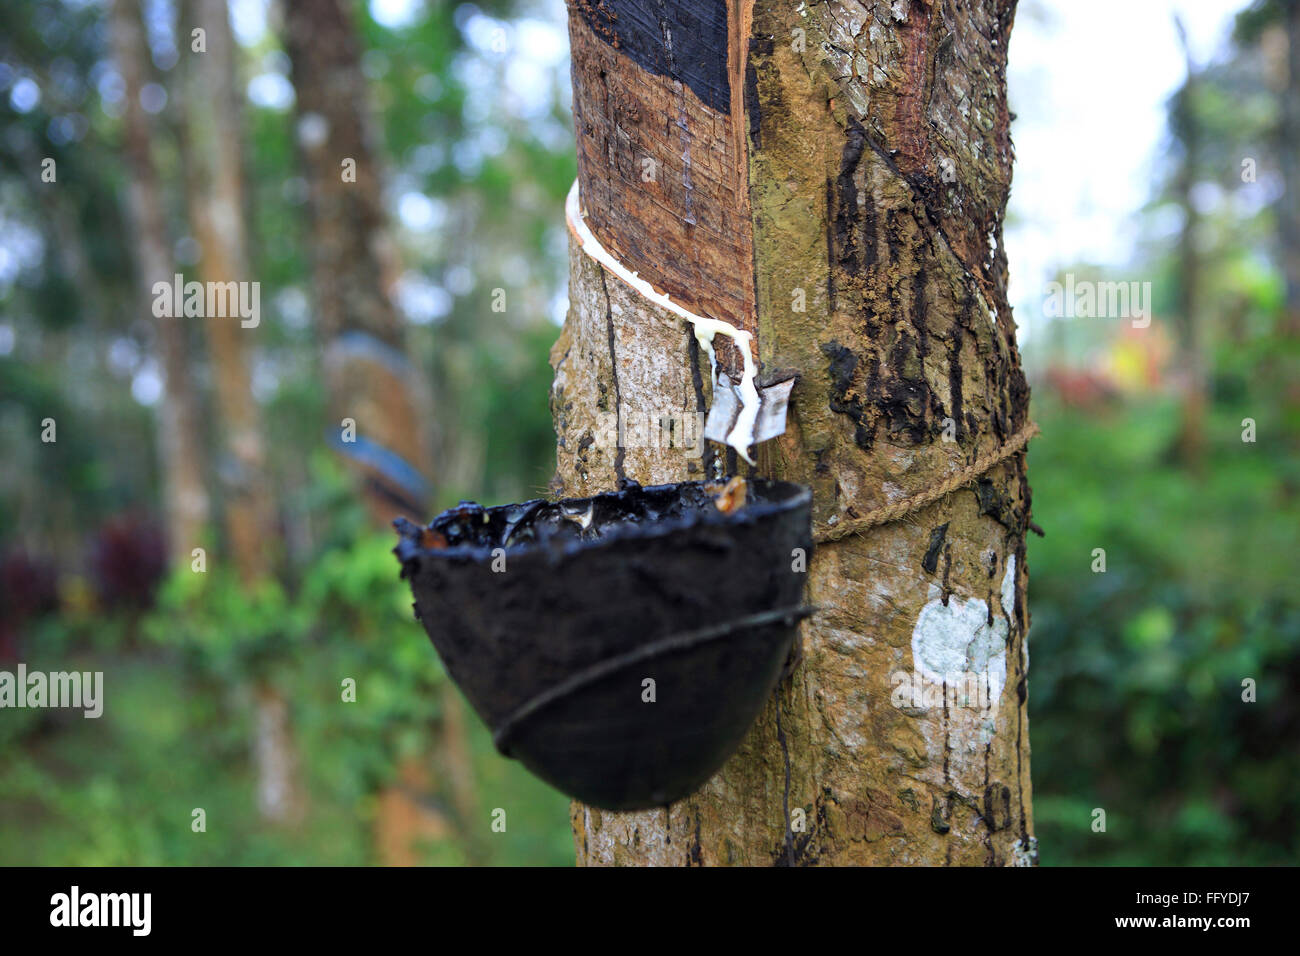 Raw Rubber Ficus Elastica Collected From Rubber Plant